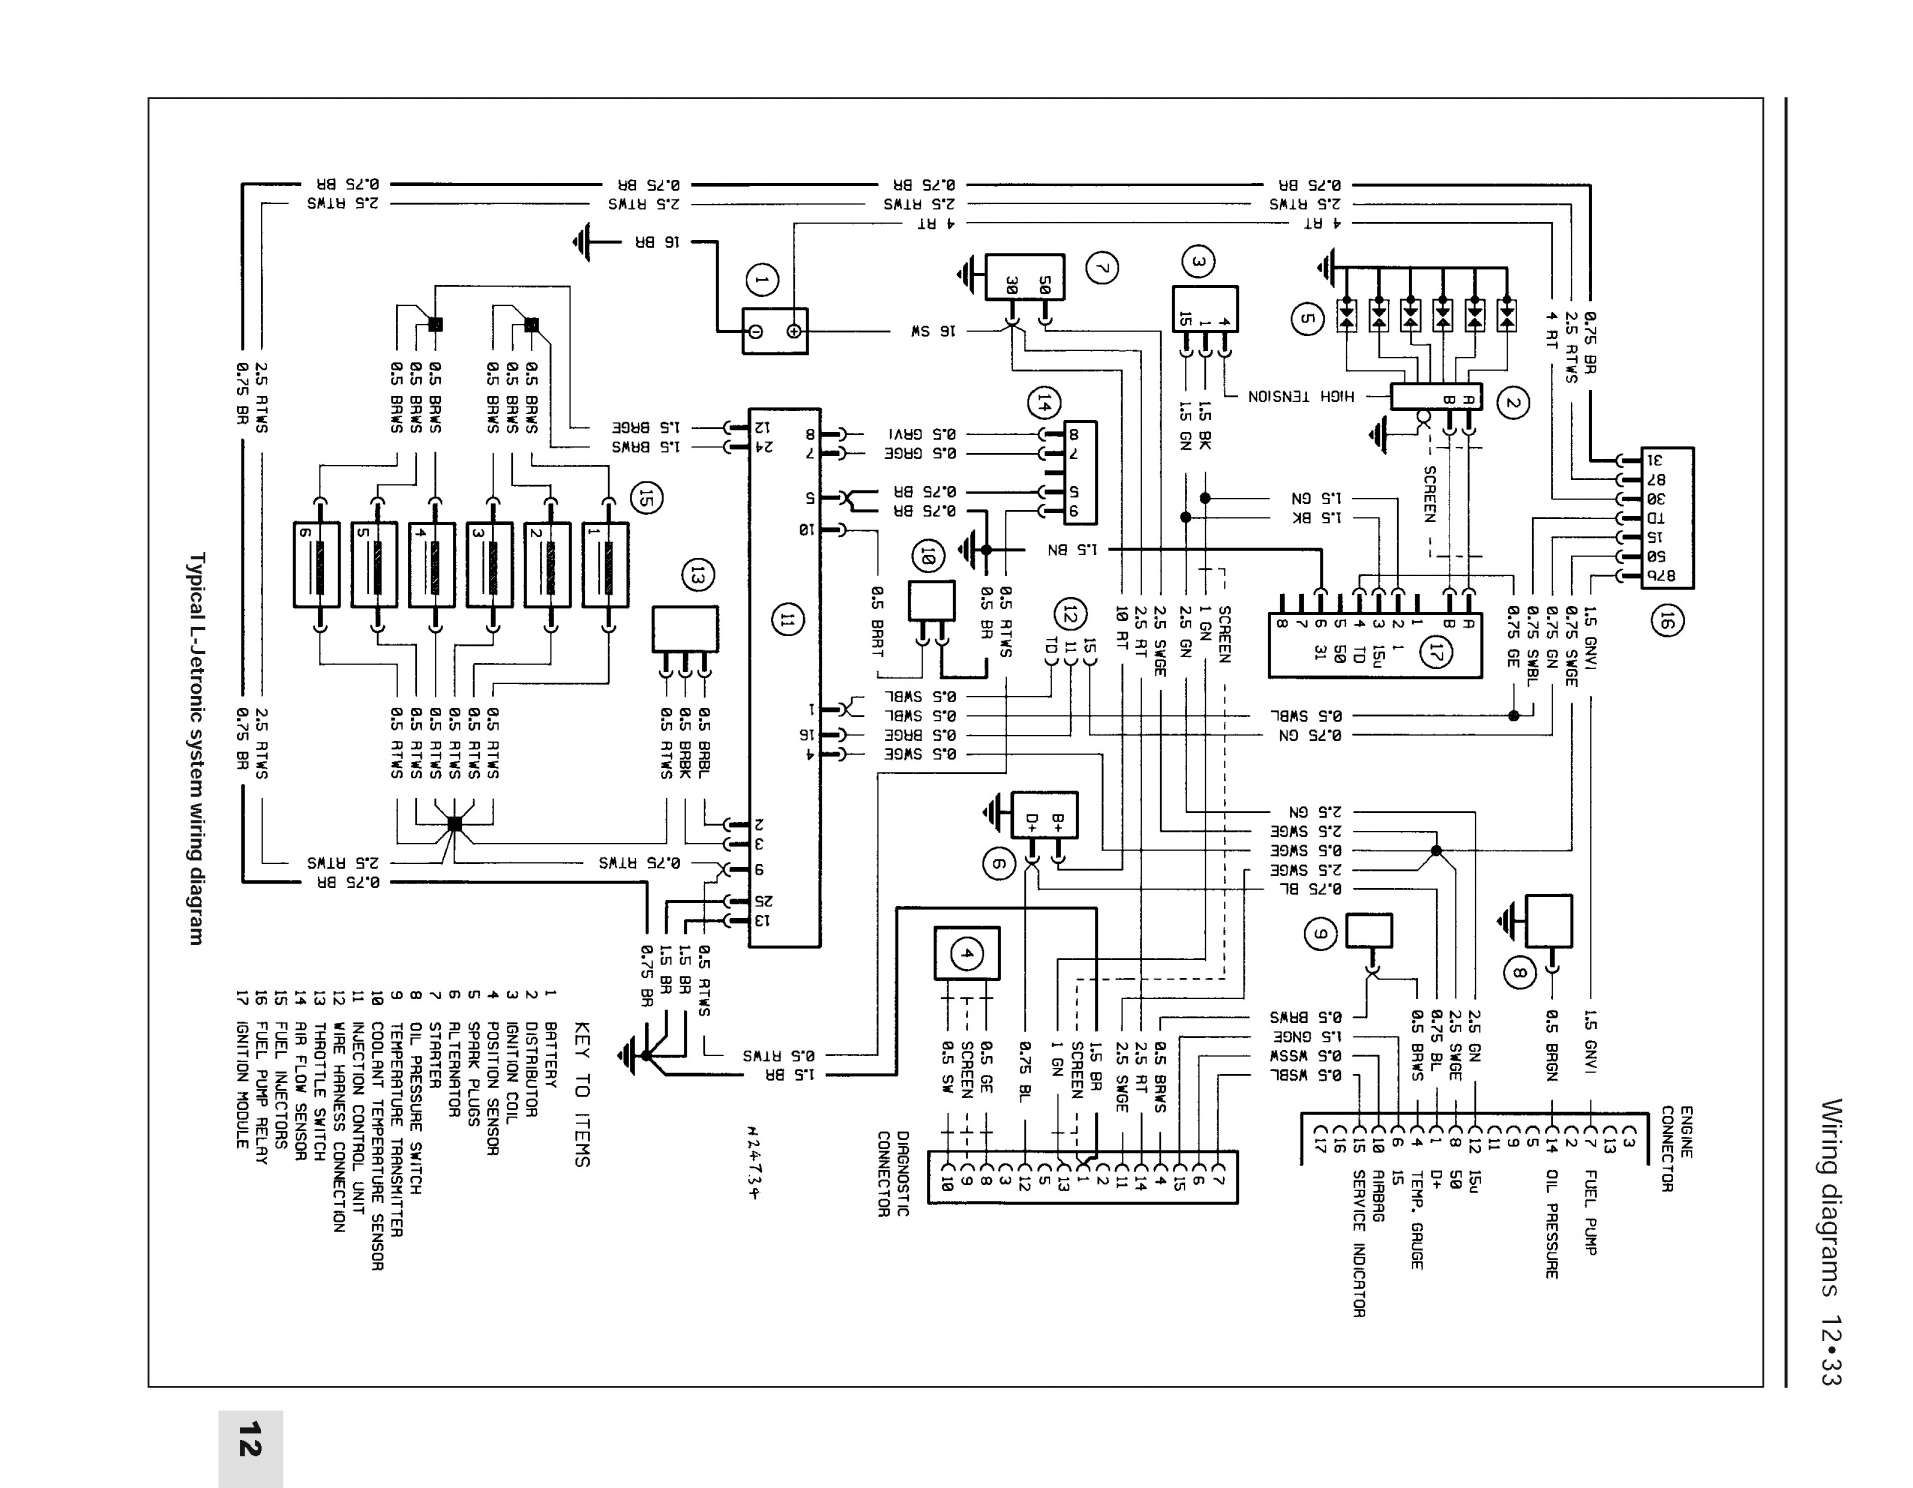 bmw e30 m3 wiring diagram 17 bmw e30 engine wiring diagram engine diagram in 2020 bmw  17 bmw e30 engine wiring diagram